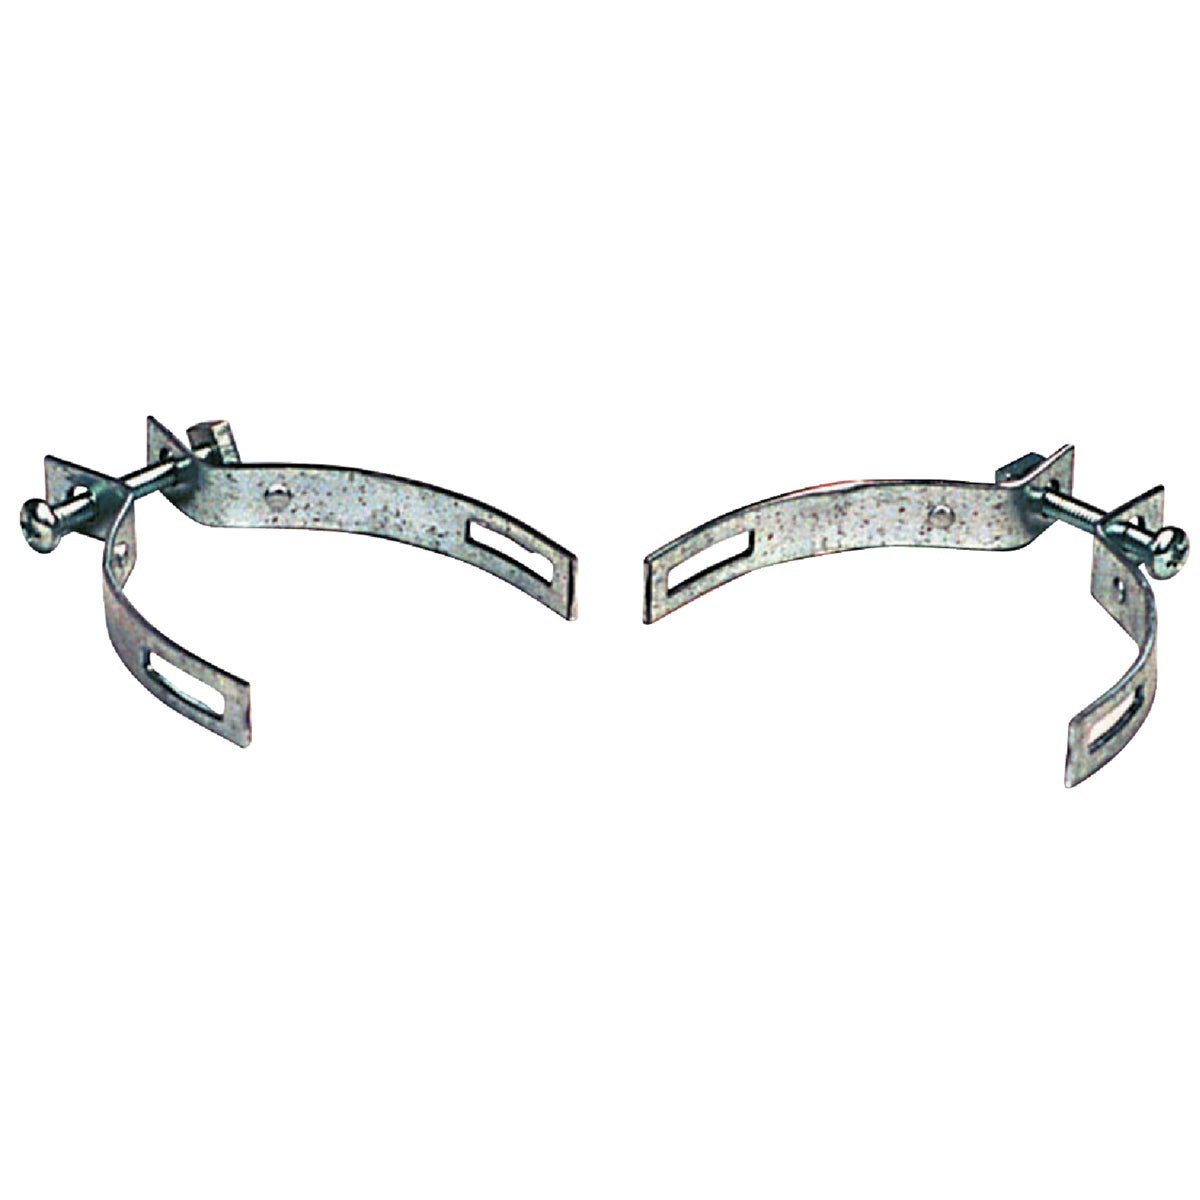 1 PAIR MOTOR CLAMPS - 2715 by Dial Manufacturing